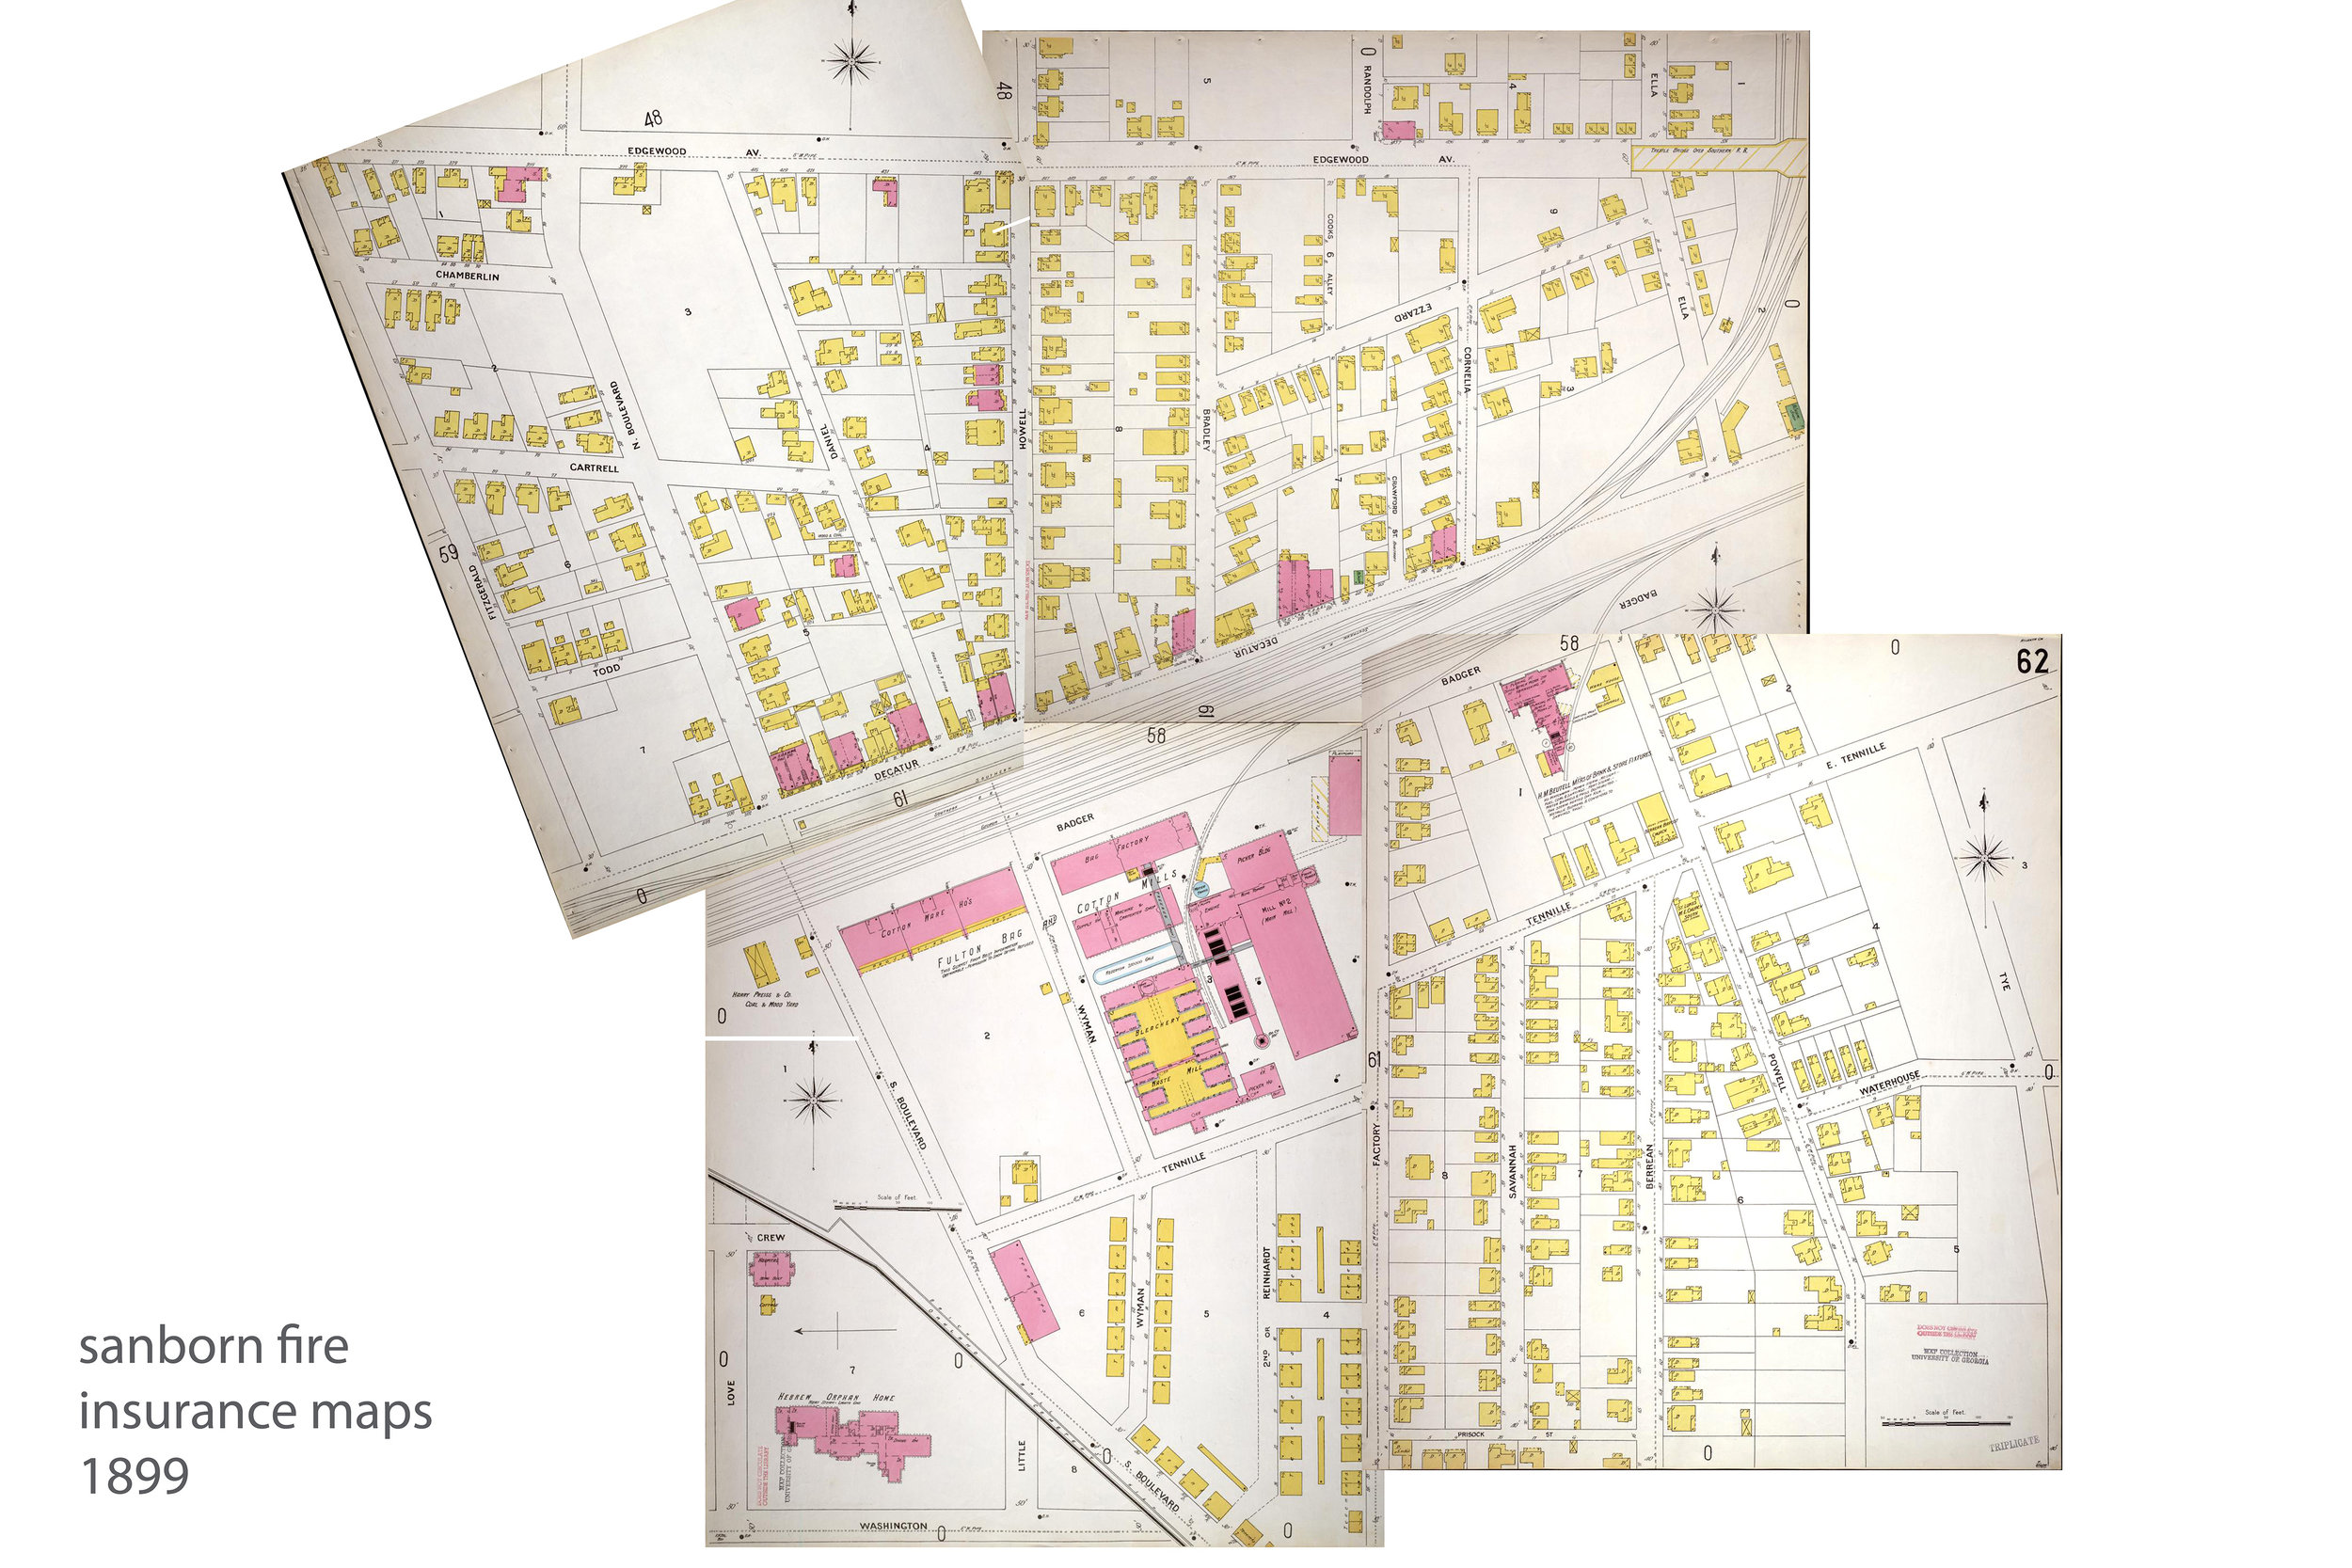 1899 Sanborn Fire Insurance Map